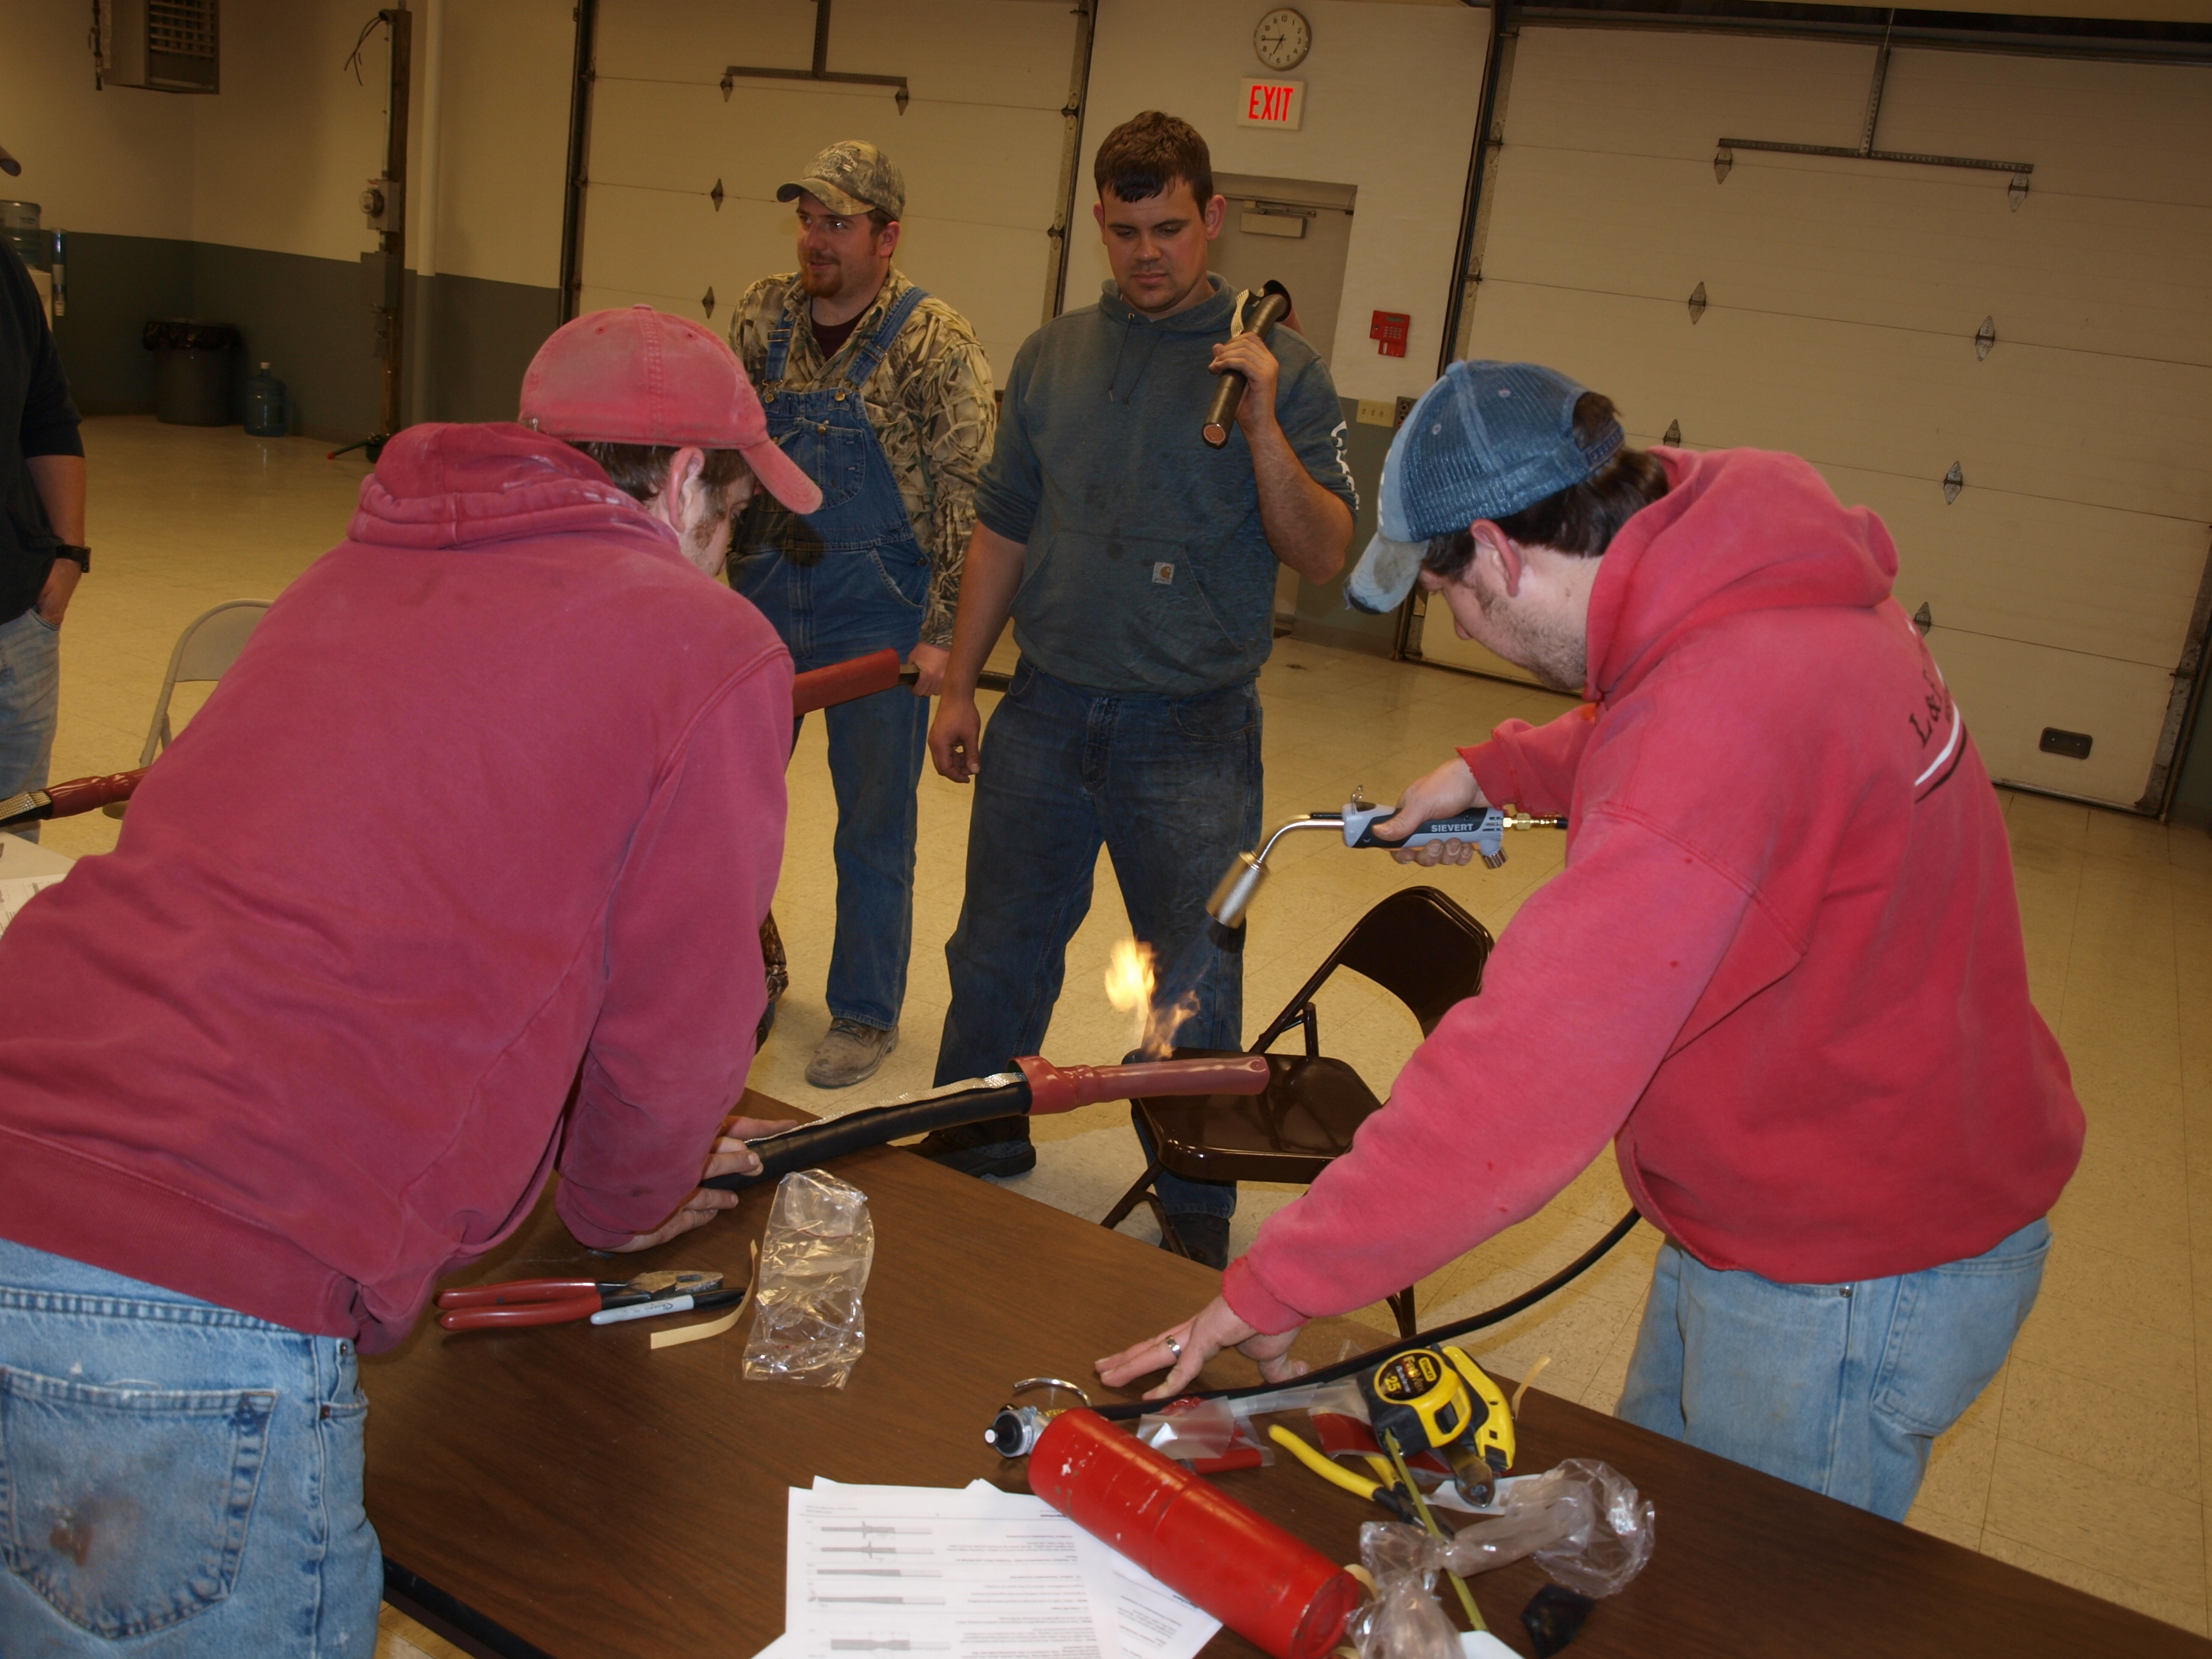 Ibew 34 Registered Electrical Worker And Trade In Addition To Receiving Skill Training On The Job Each Apprentice Is Provided With Related Classroom That Produces Competency Pride